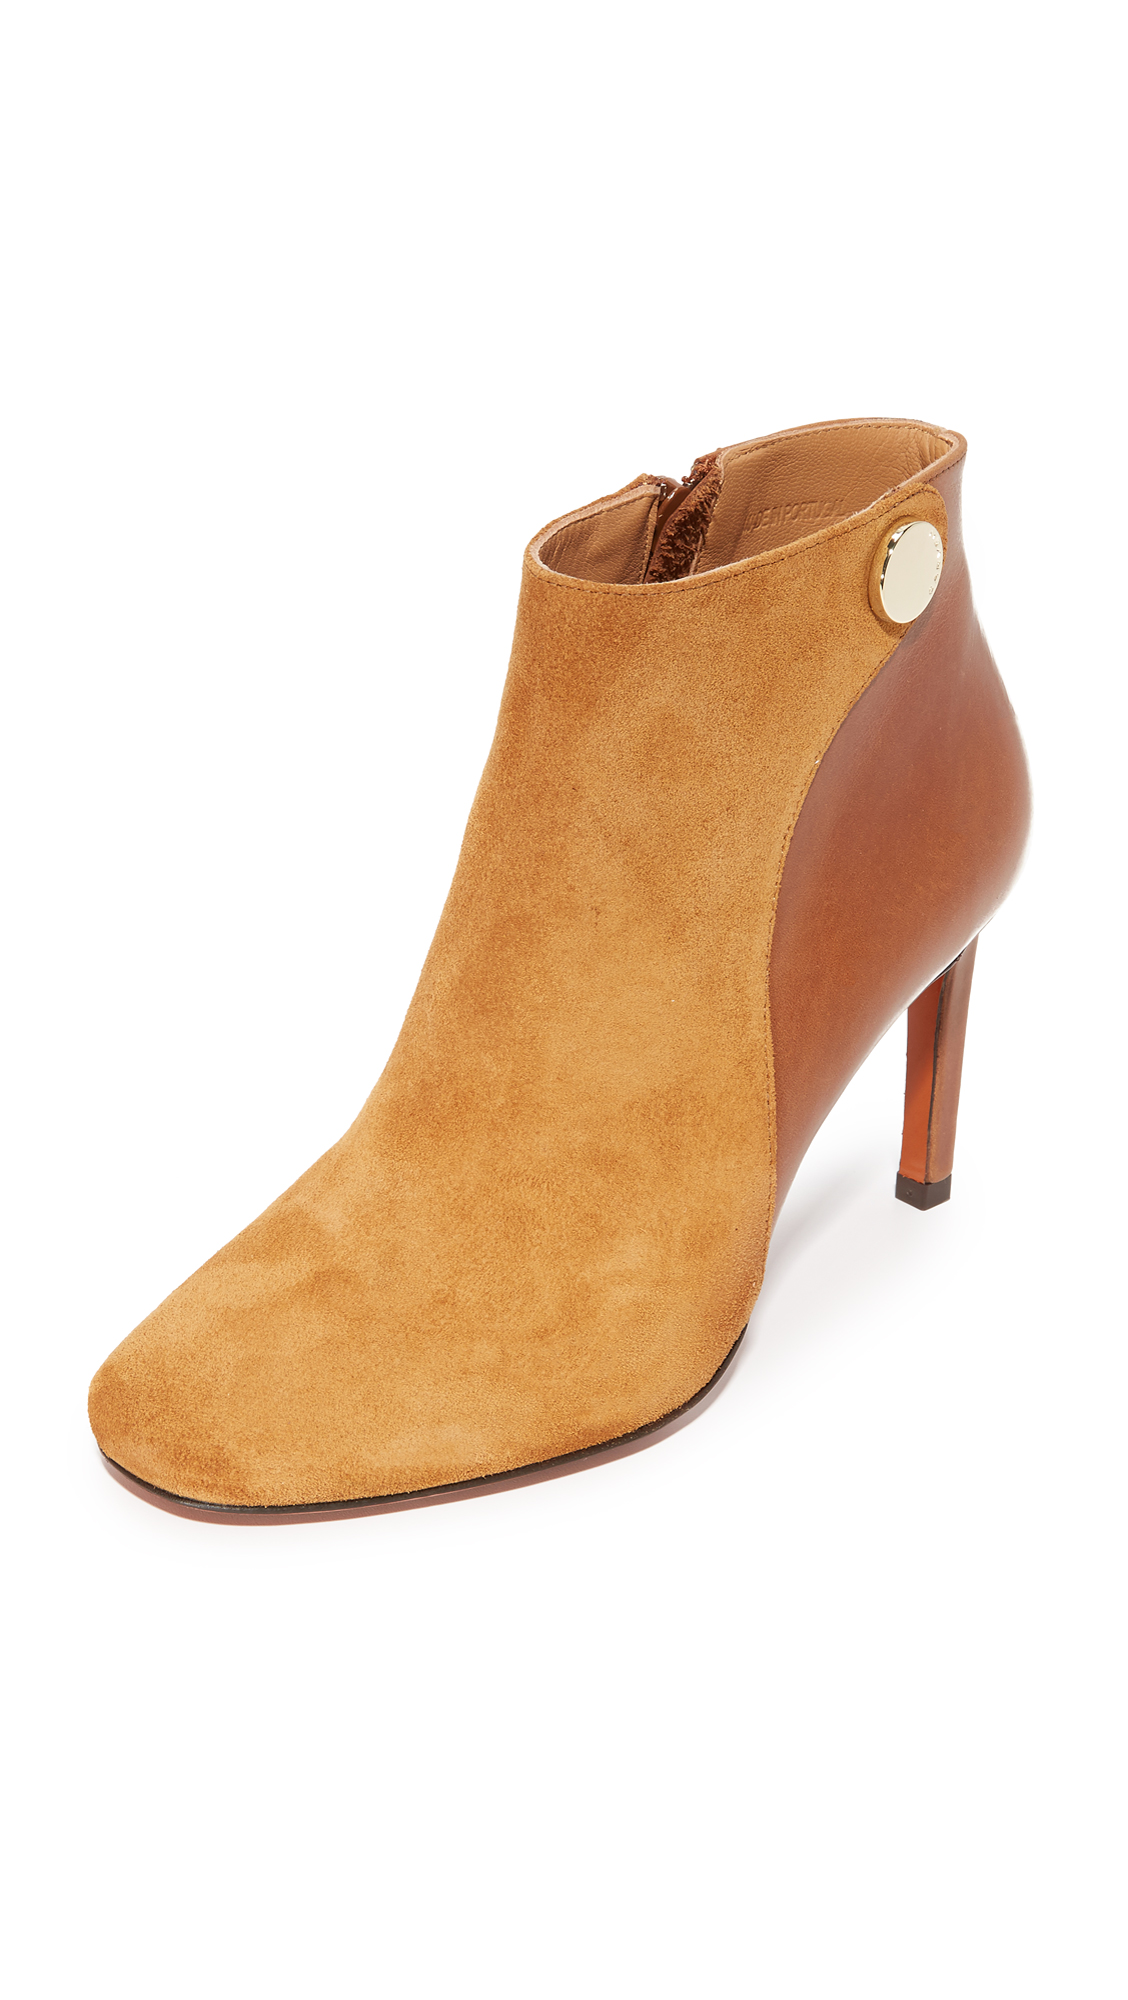 Carven Booties - Cognac